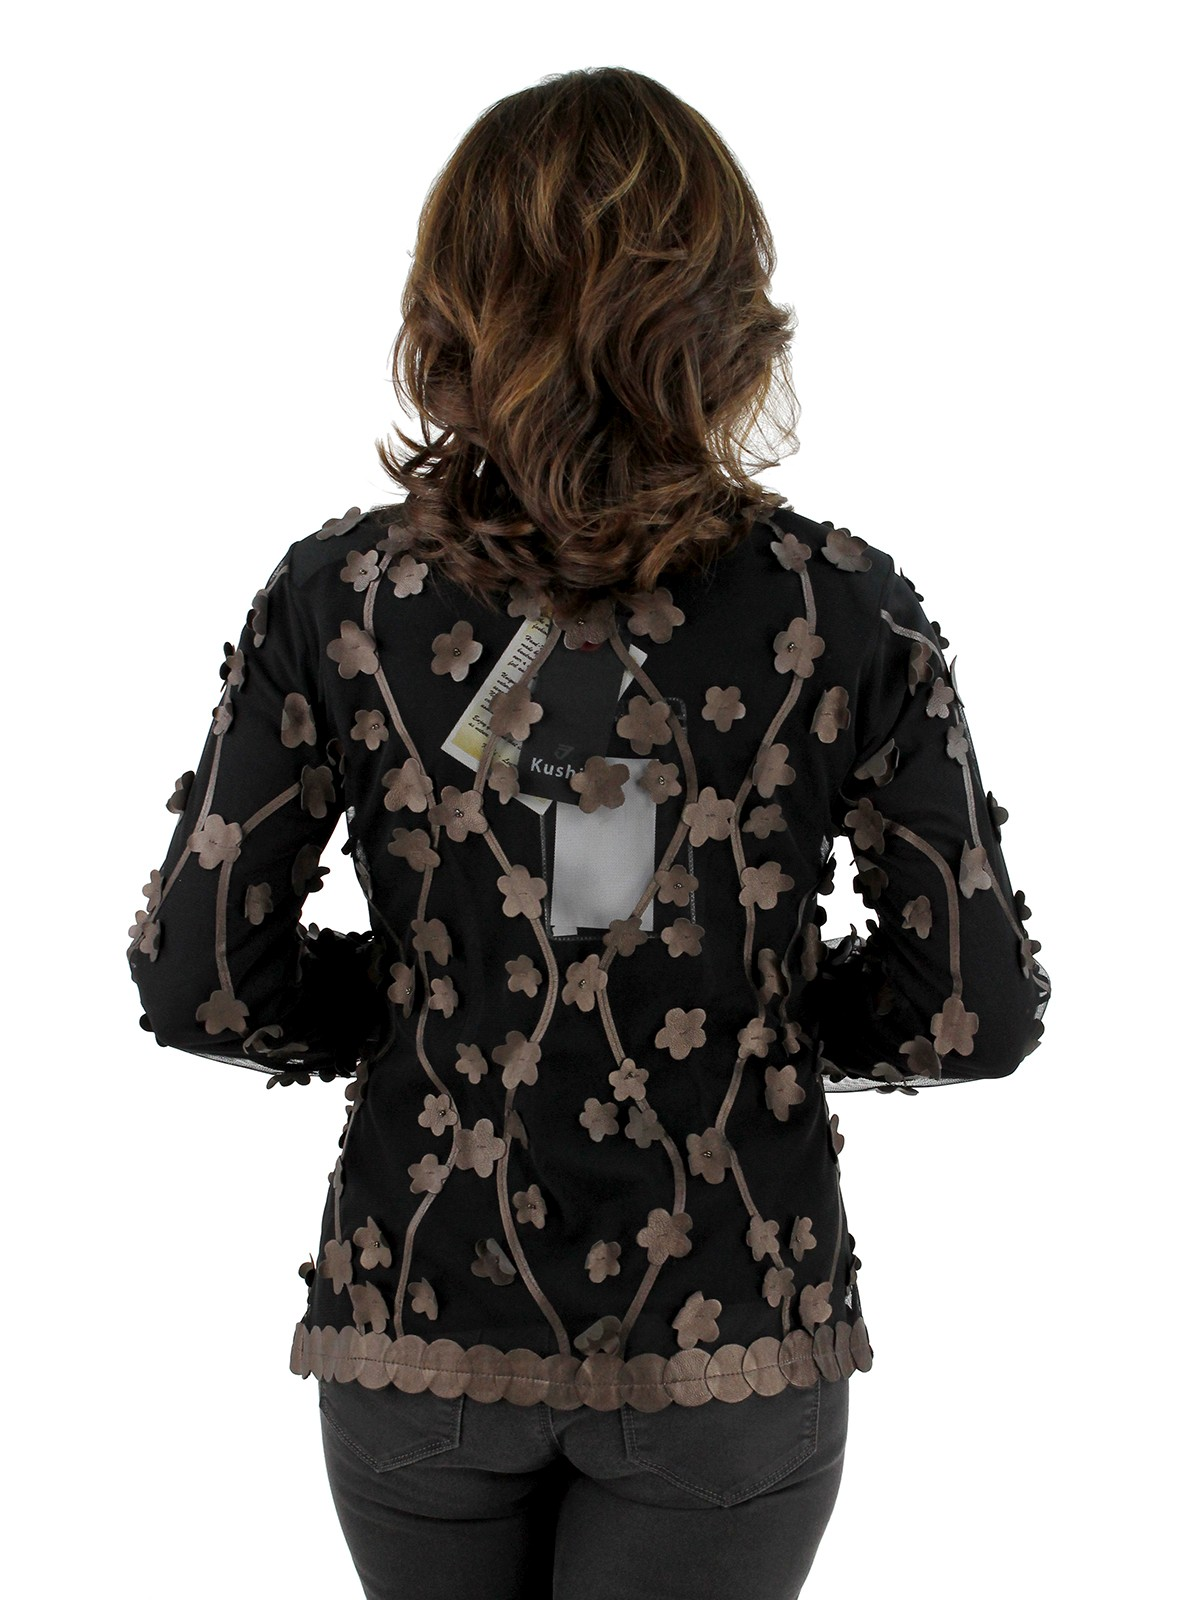 Bronze Floral Leather Inserts Mesh Jacket